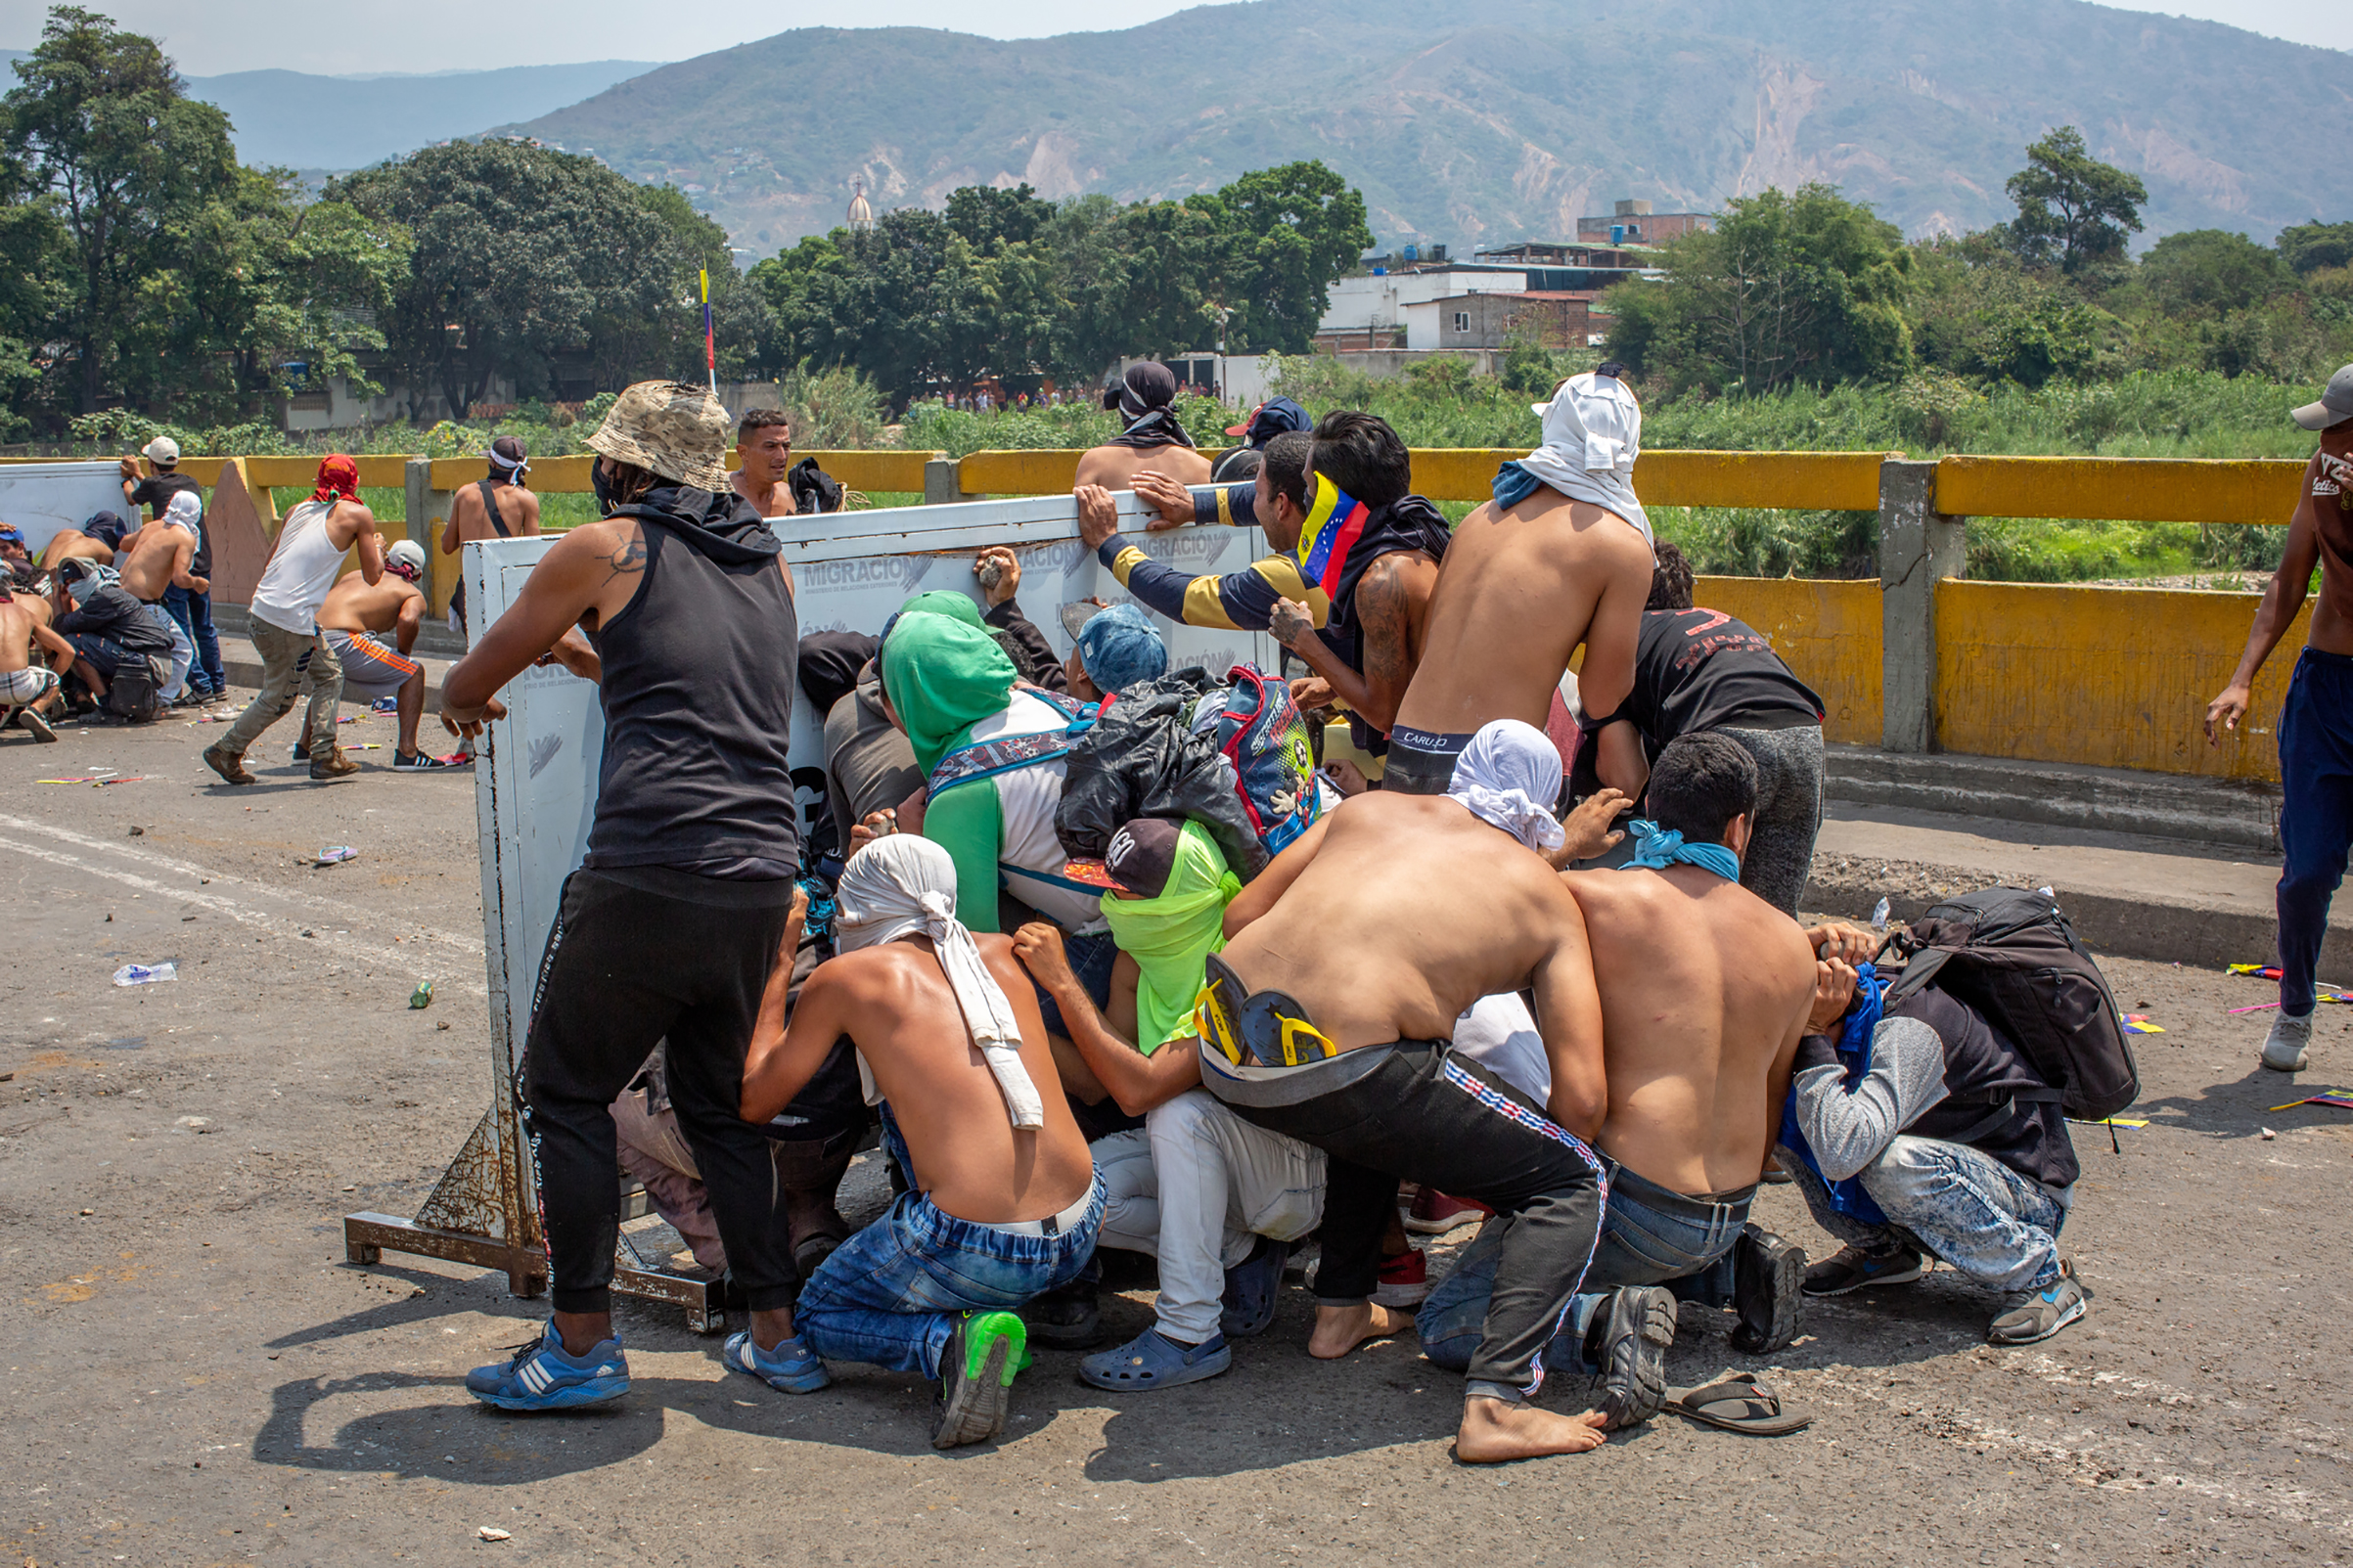 A group of demonstrators take cover during a clash with Venezuelan national police officers on the Simón Bolívar International Bridge, which connects Colombia and Venezuela, near Cúcuta, on Feb. 23, 2019.